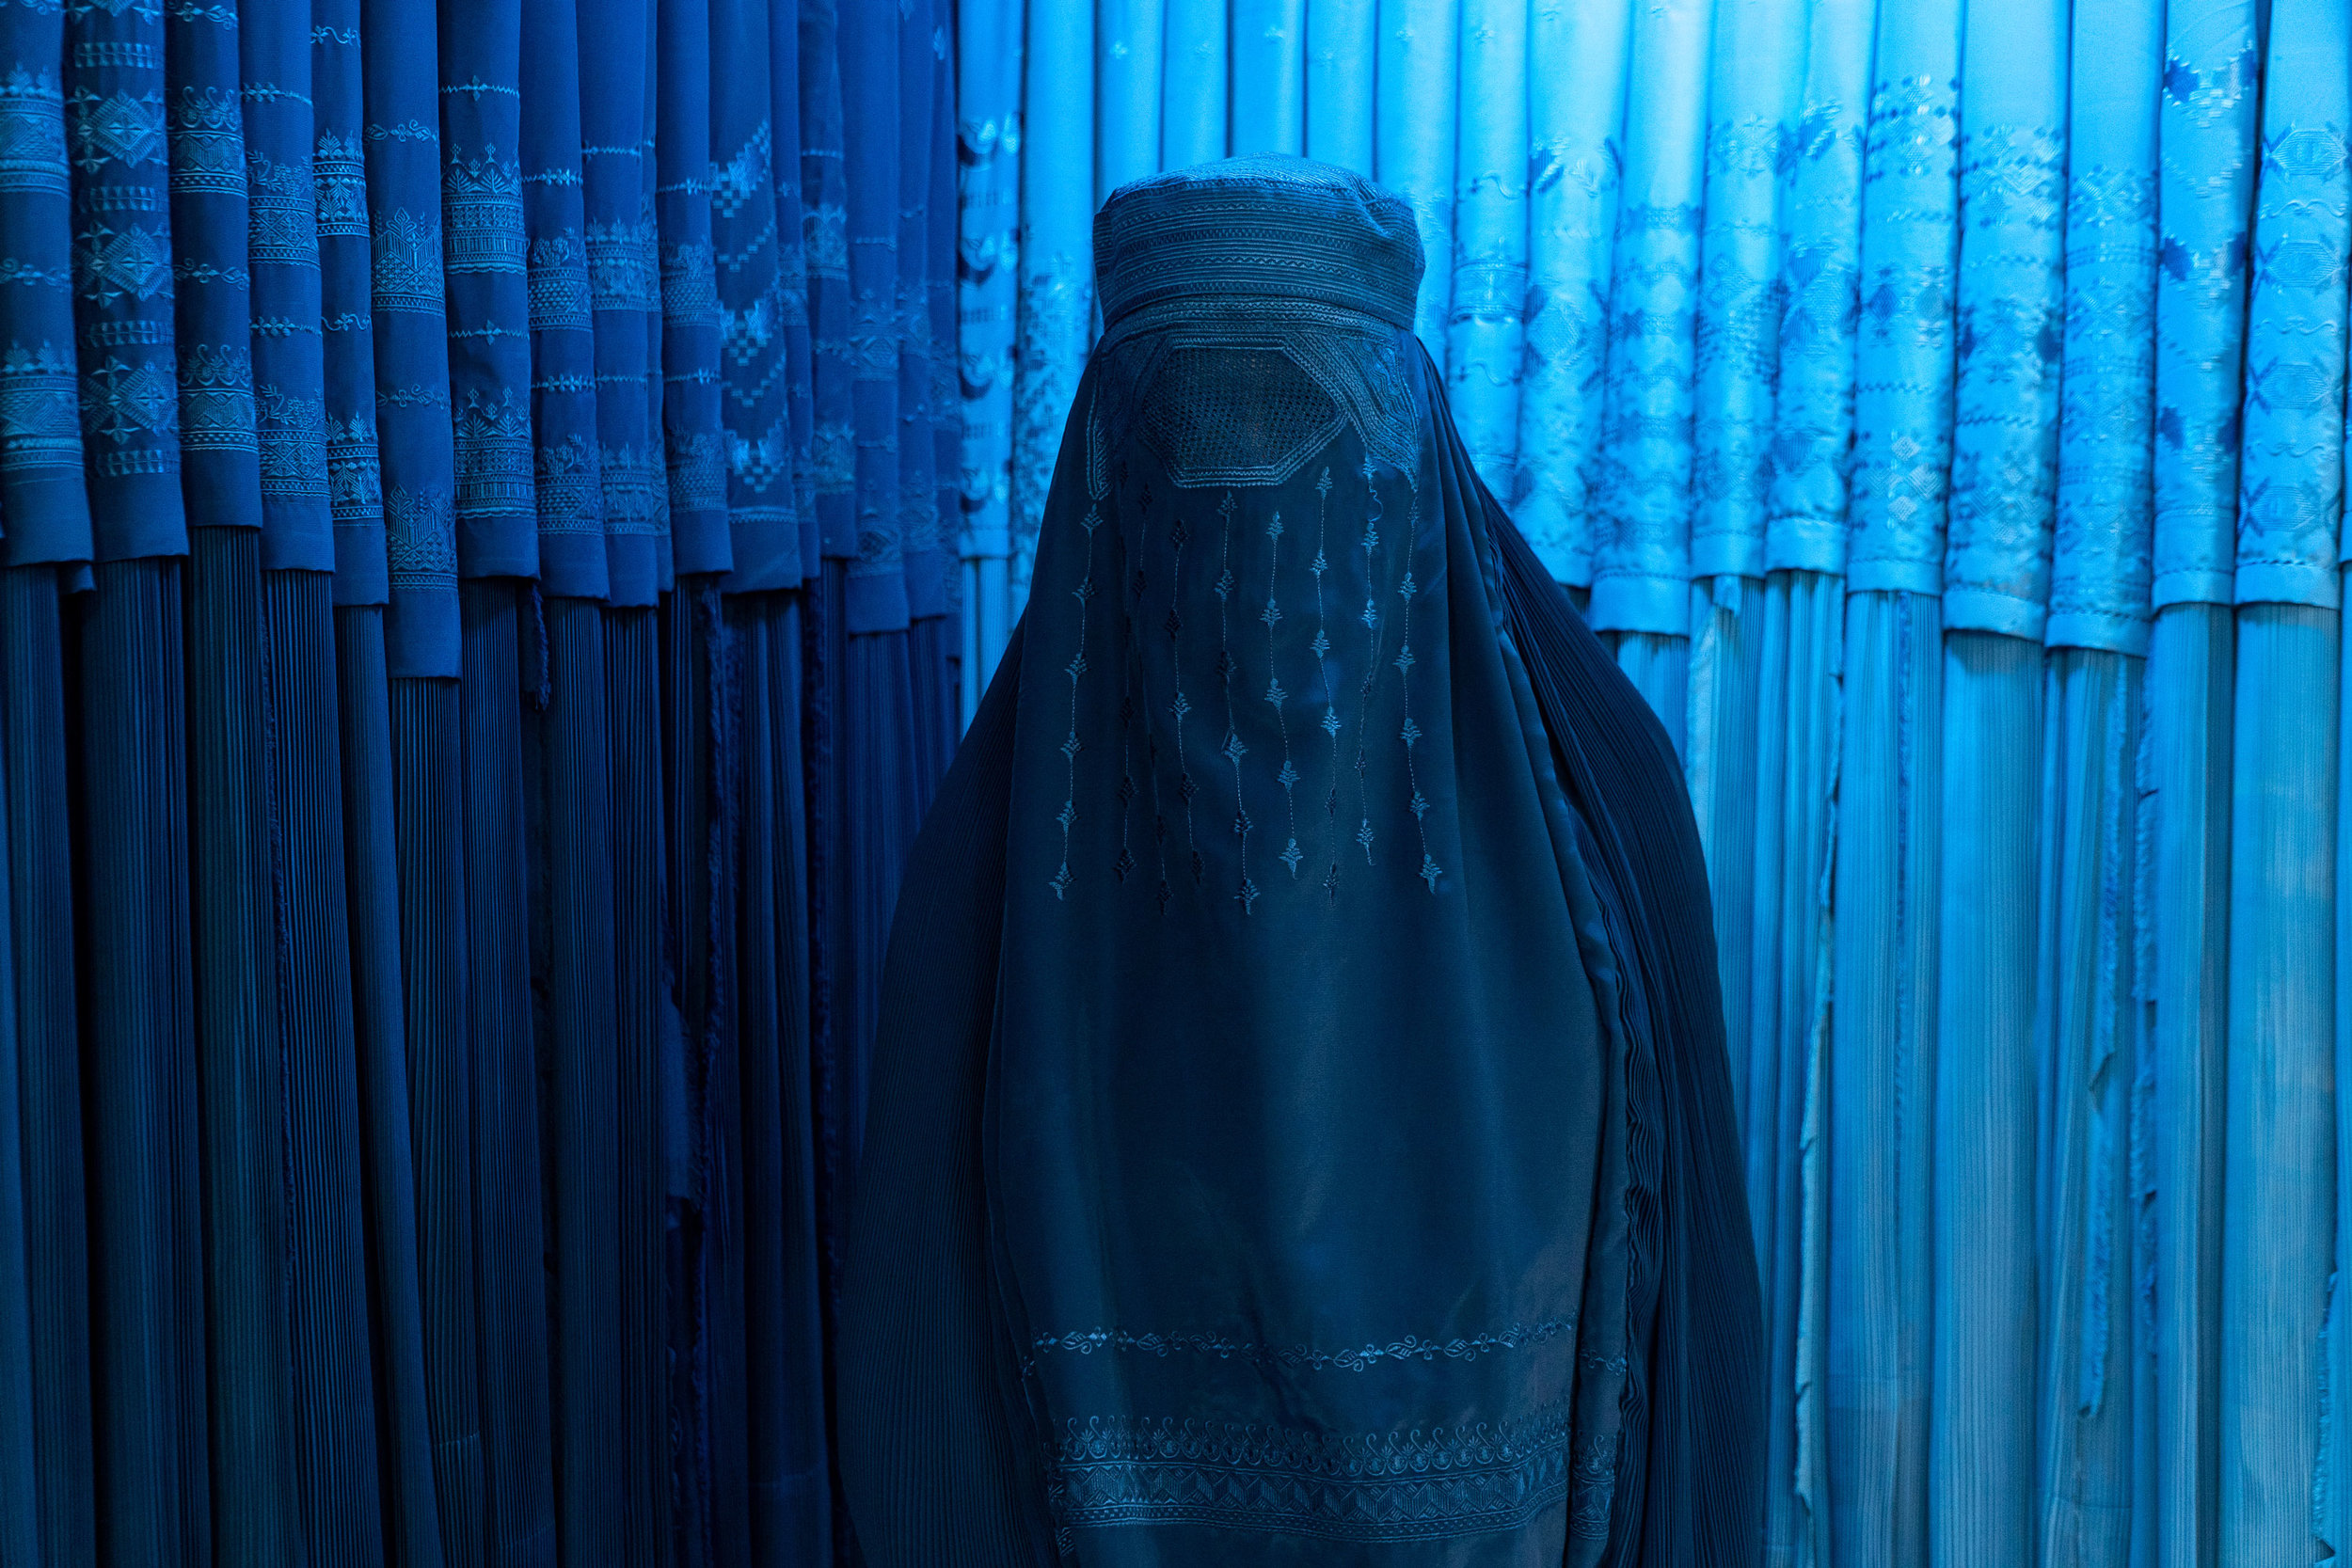 Perhaps the most ubiquitous symbol of Afghanistan's women is the  chadri , or commonly called a  burqa  in the West ( burqa  is the Arabic term, whereas  chadri  is Dari/Persian). Here, a woman poses in a burqa shop in thee northern city of Mazar-i-Sharif. While no longer mandatory, many women in Afghanistan choose to wear the burqa out of safety and protection, while others do so out of a sense of obligation, and others may be forced to by their families. The debate rages on domestically as to the place for this piece of clothing.